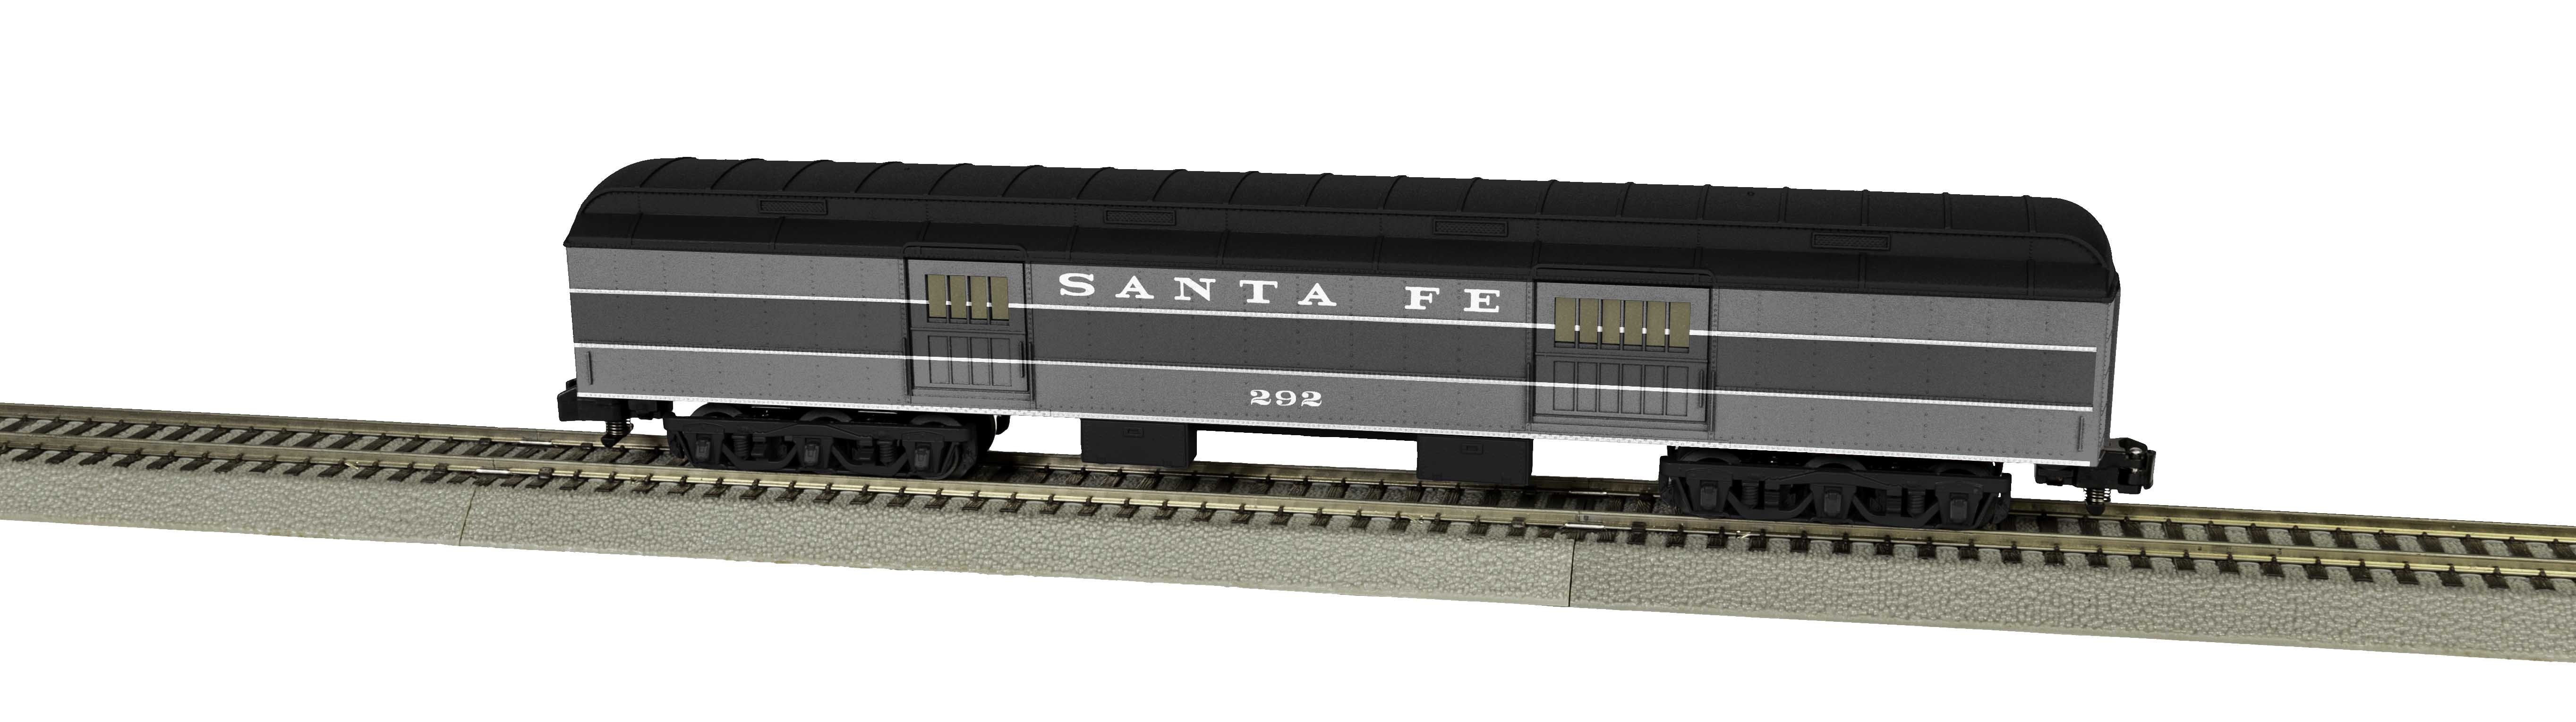 Lionel 2019230 S Santa Fe Heavyweight Baggage Car #292